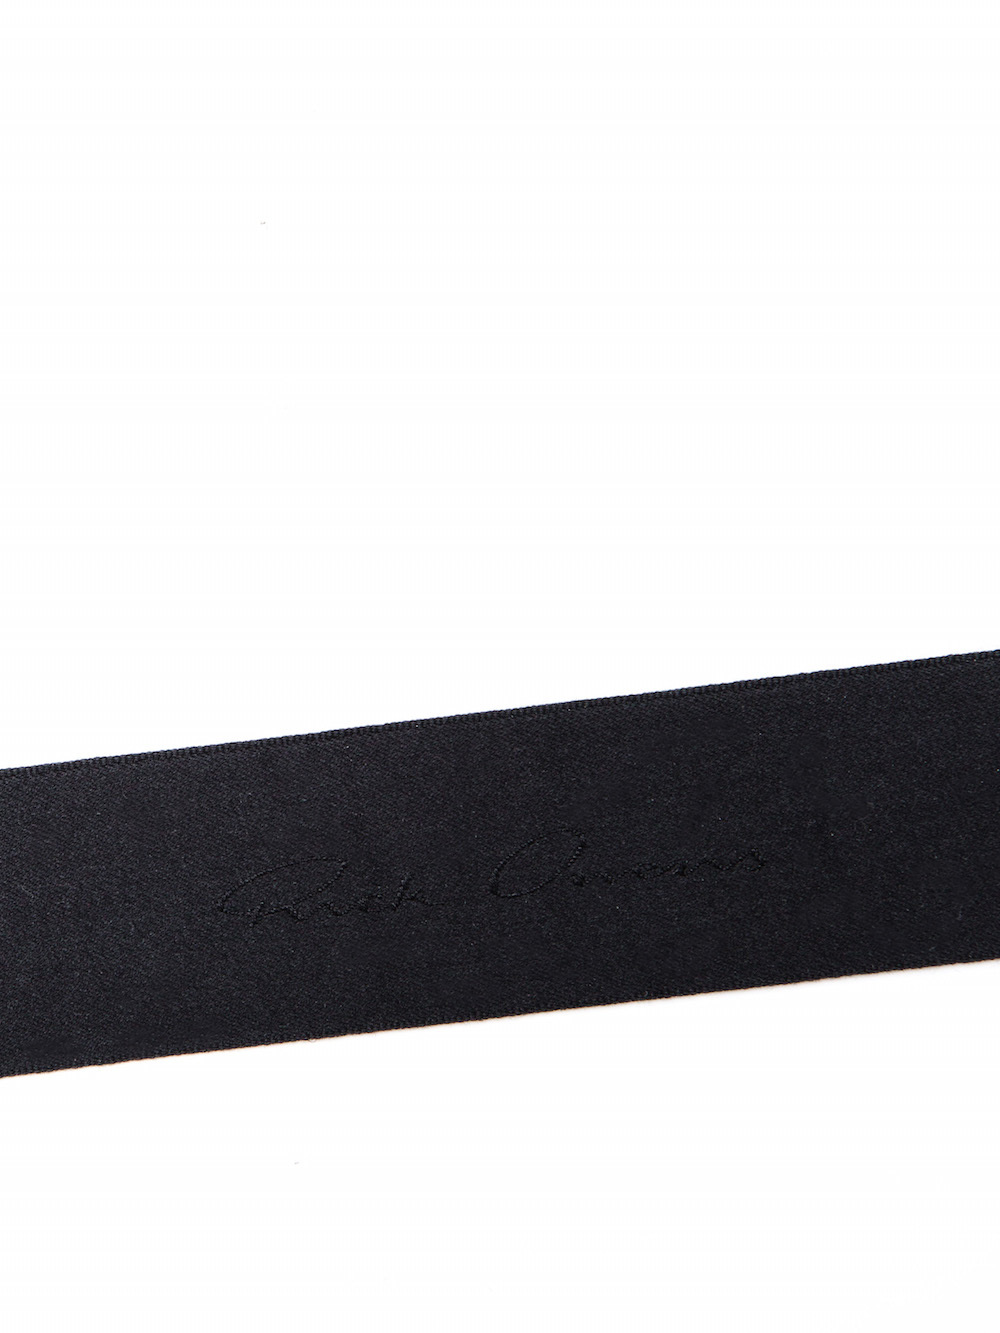 RICK OWENS NECK WALLET IN BLACK COW LEATHER IS RECTANGULAR